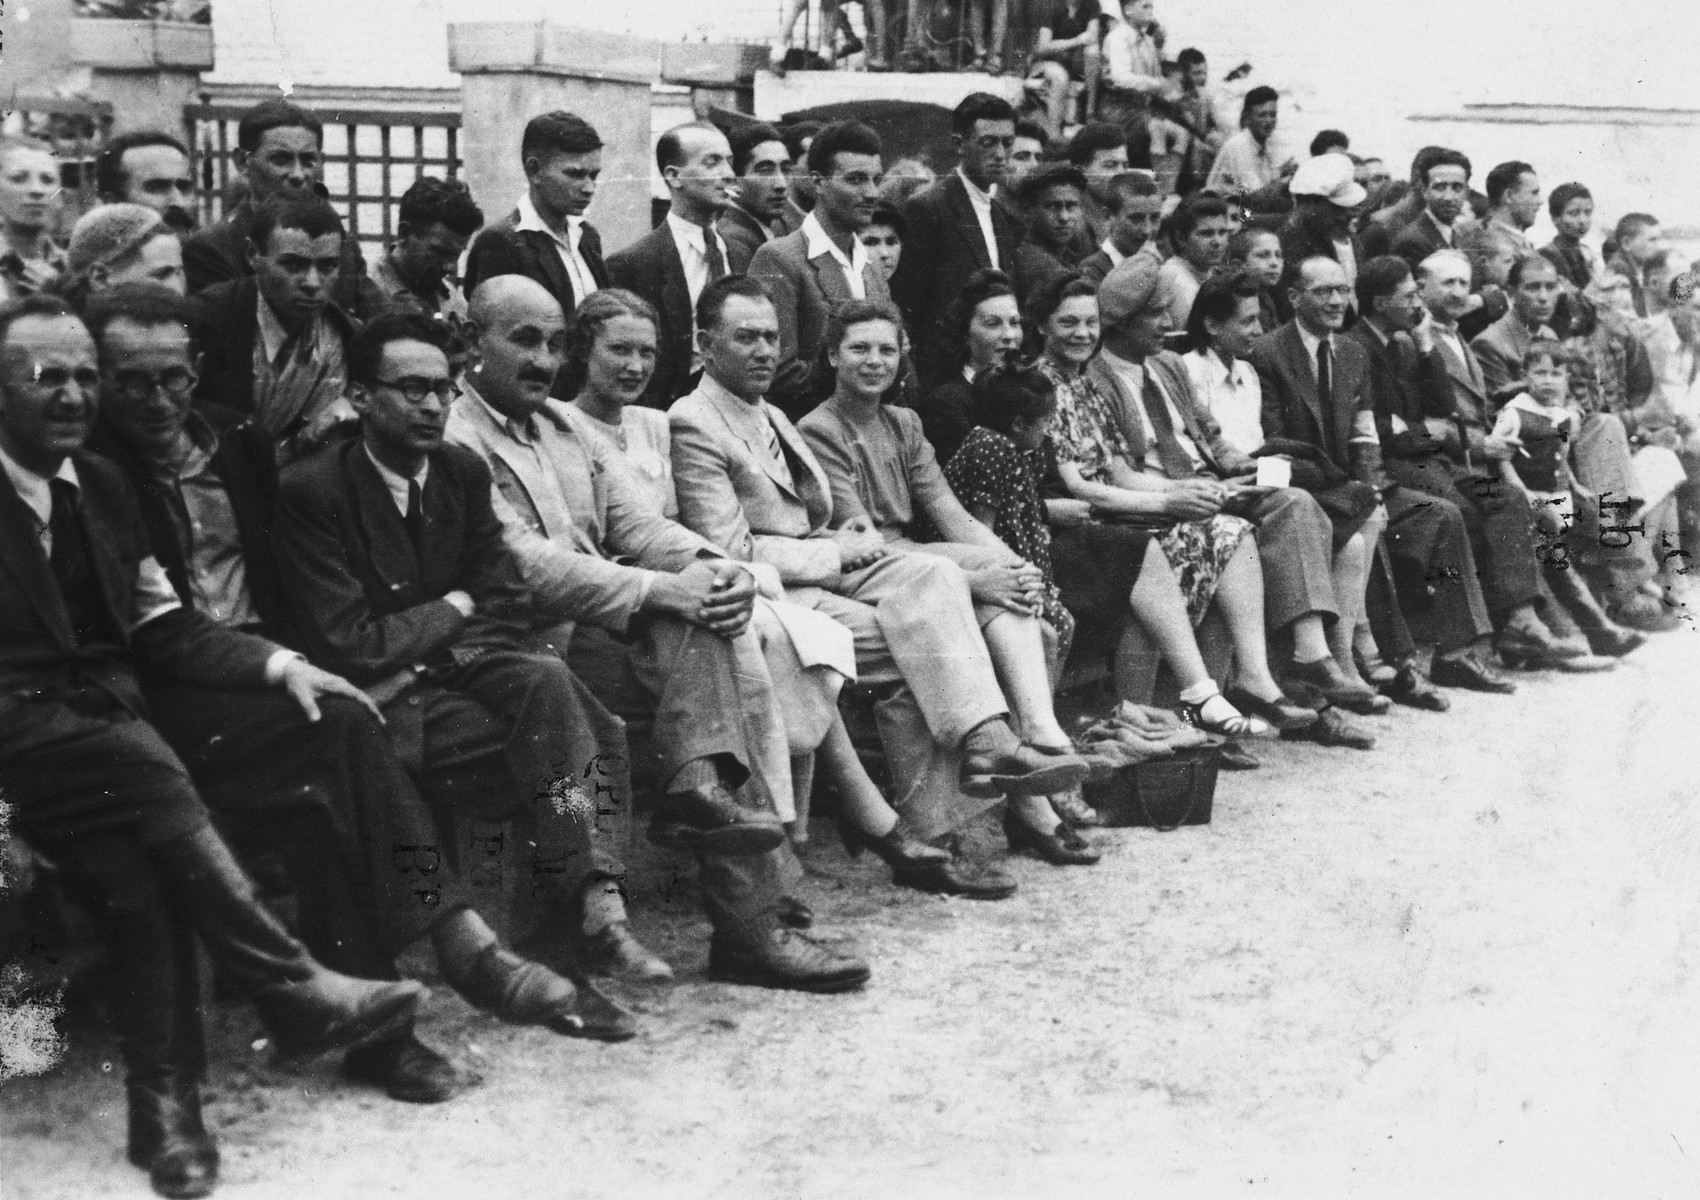 Jewish officials of the Vilna ghetto are seated in the audience at a sporting event.  Among those pictured are Ferdinand Beigel (front row, left), Salek Desler (chief of police, fourth from left) and his wife, Jacob Gens (front row, sixth from the left).  Next to him is his daughter Ada, and his wife (tenth from left).